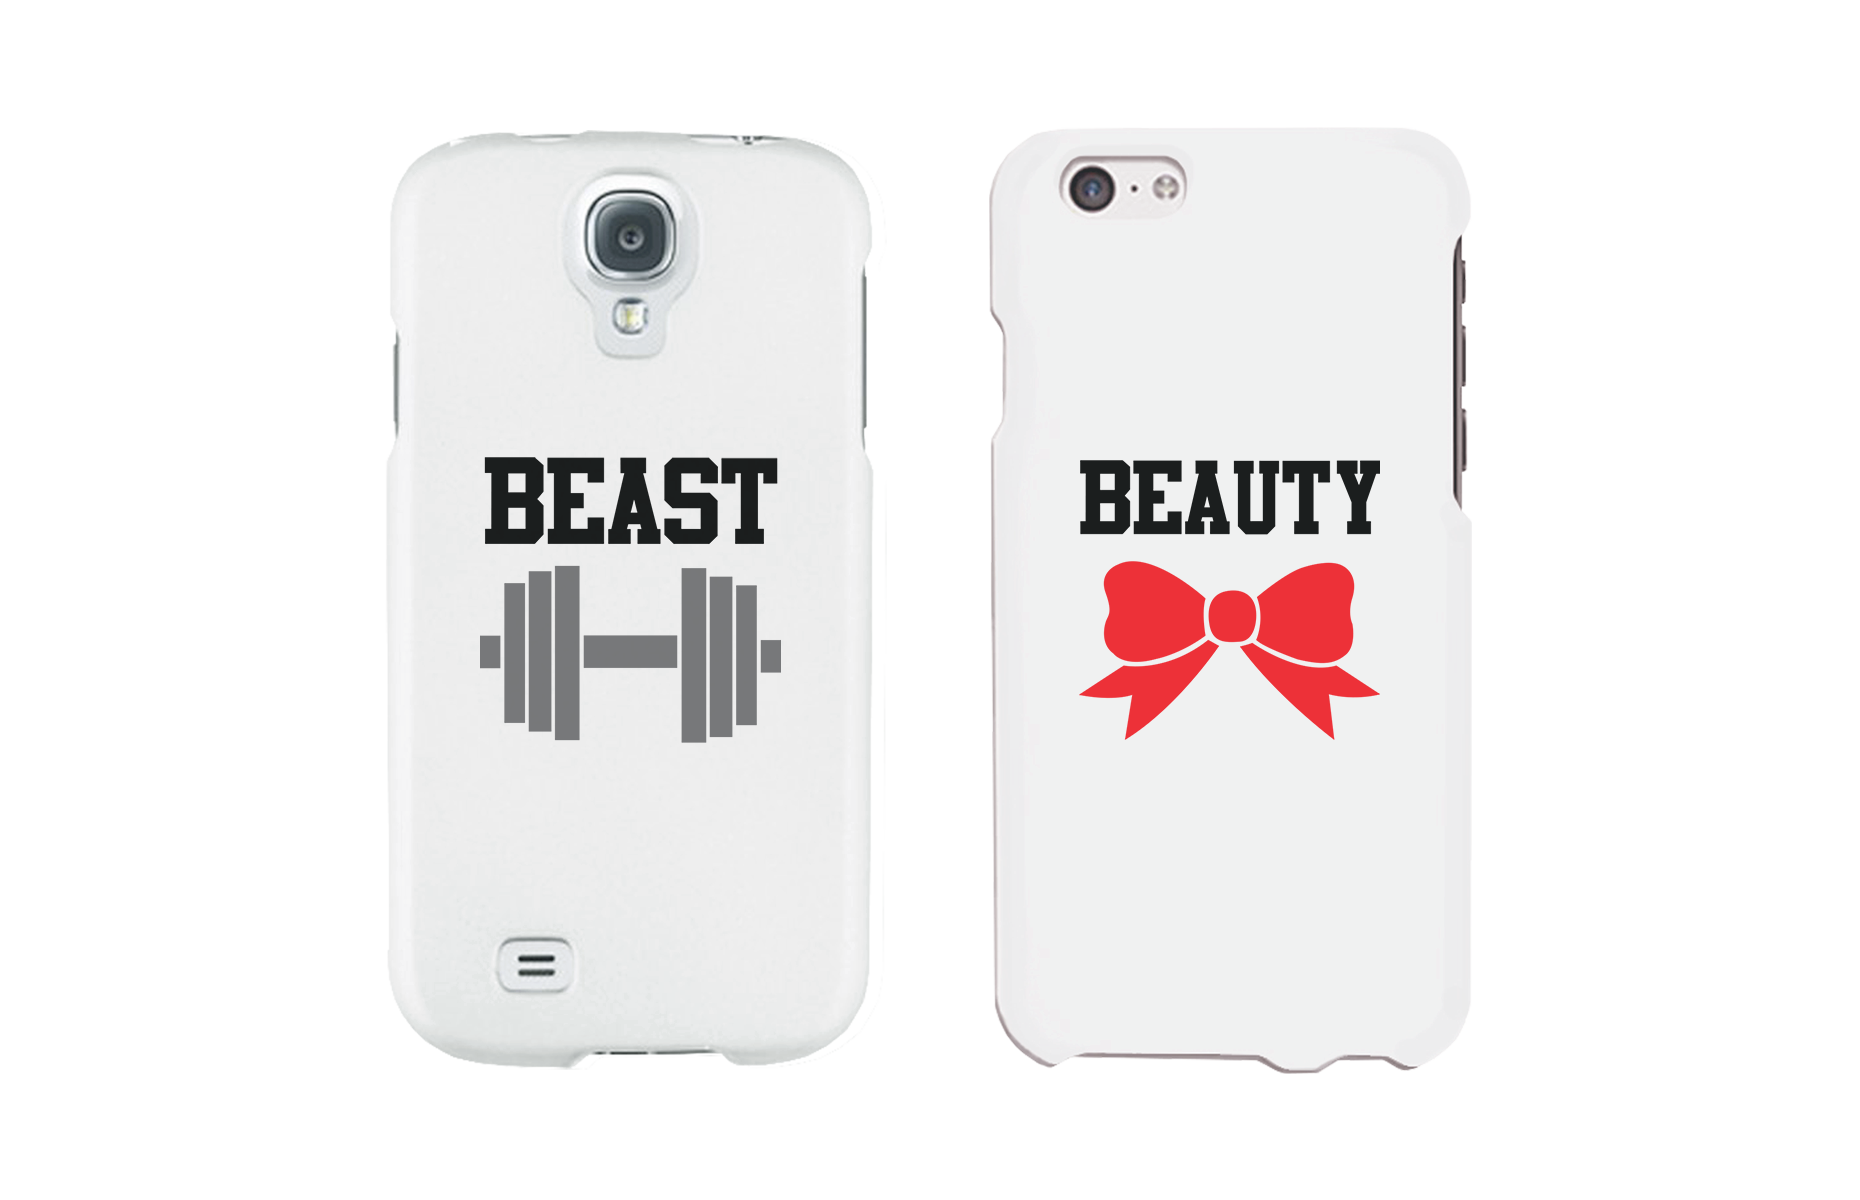 169575eaa9 Beauty and Beast Matching Couple White Phone Cases - 365 IN LOVE ...